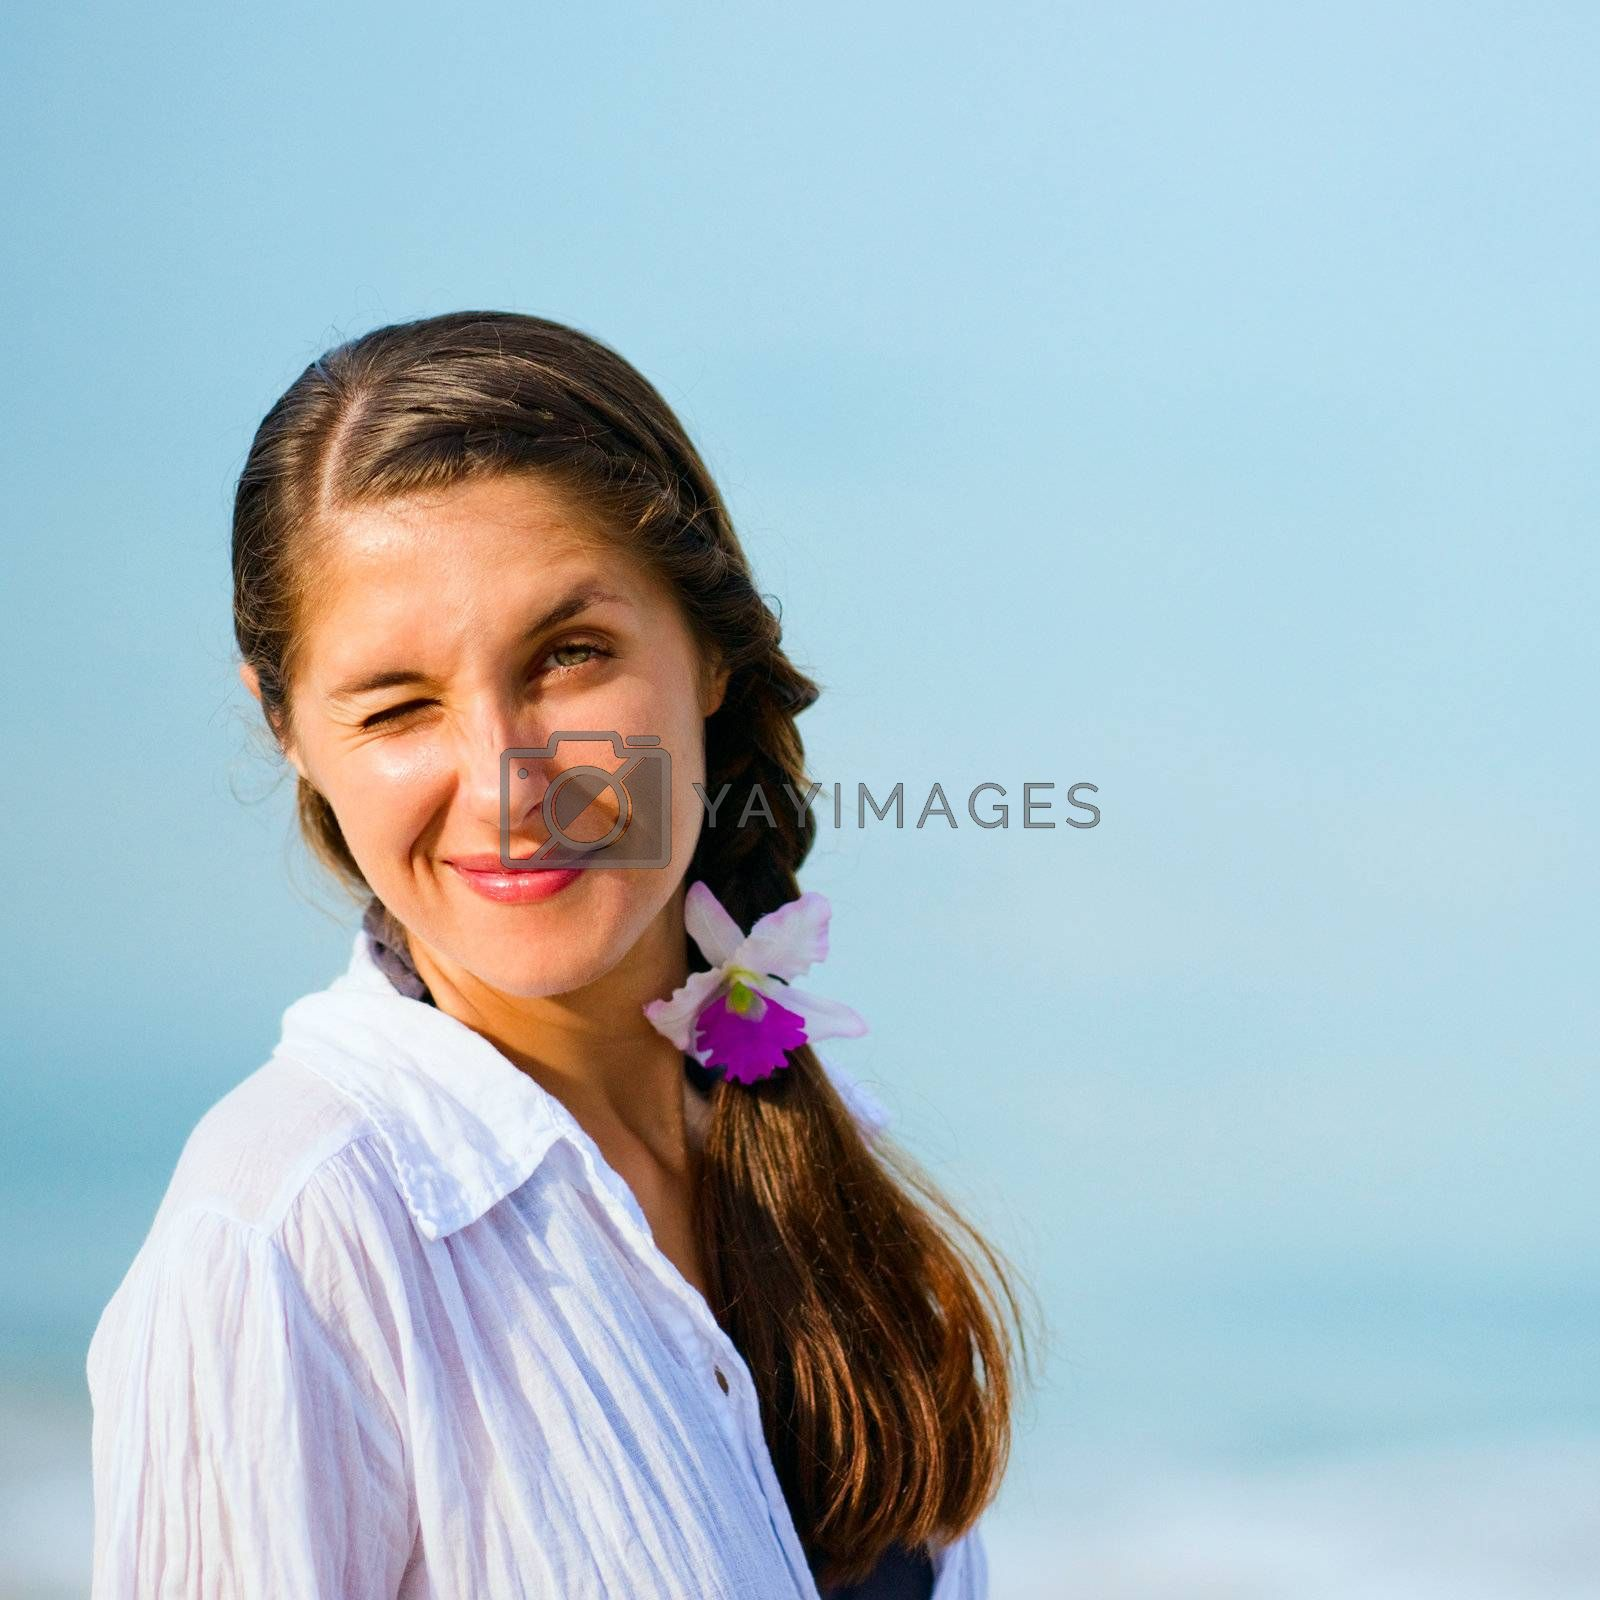 Portrait of young winking woman on the sky background